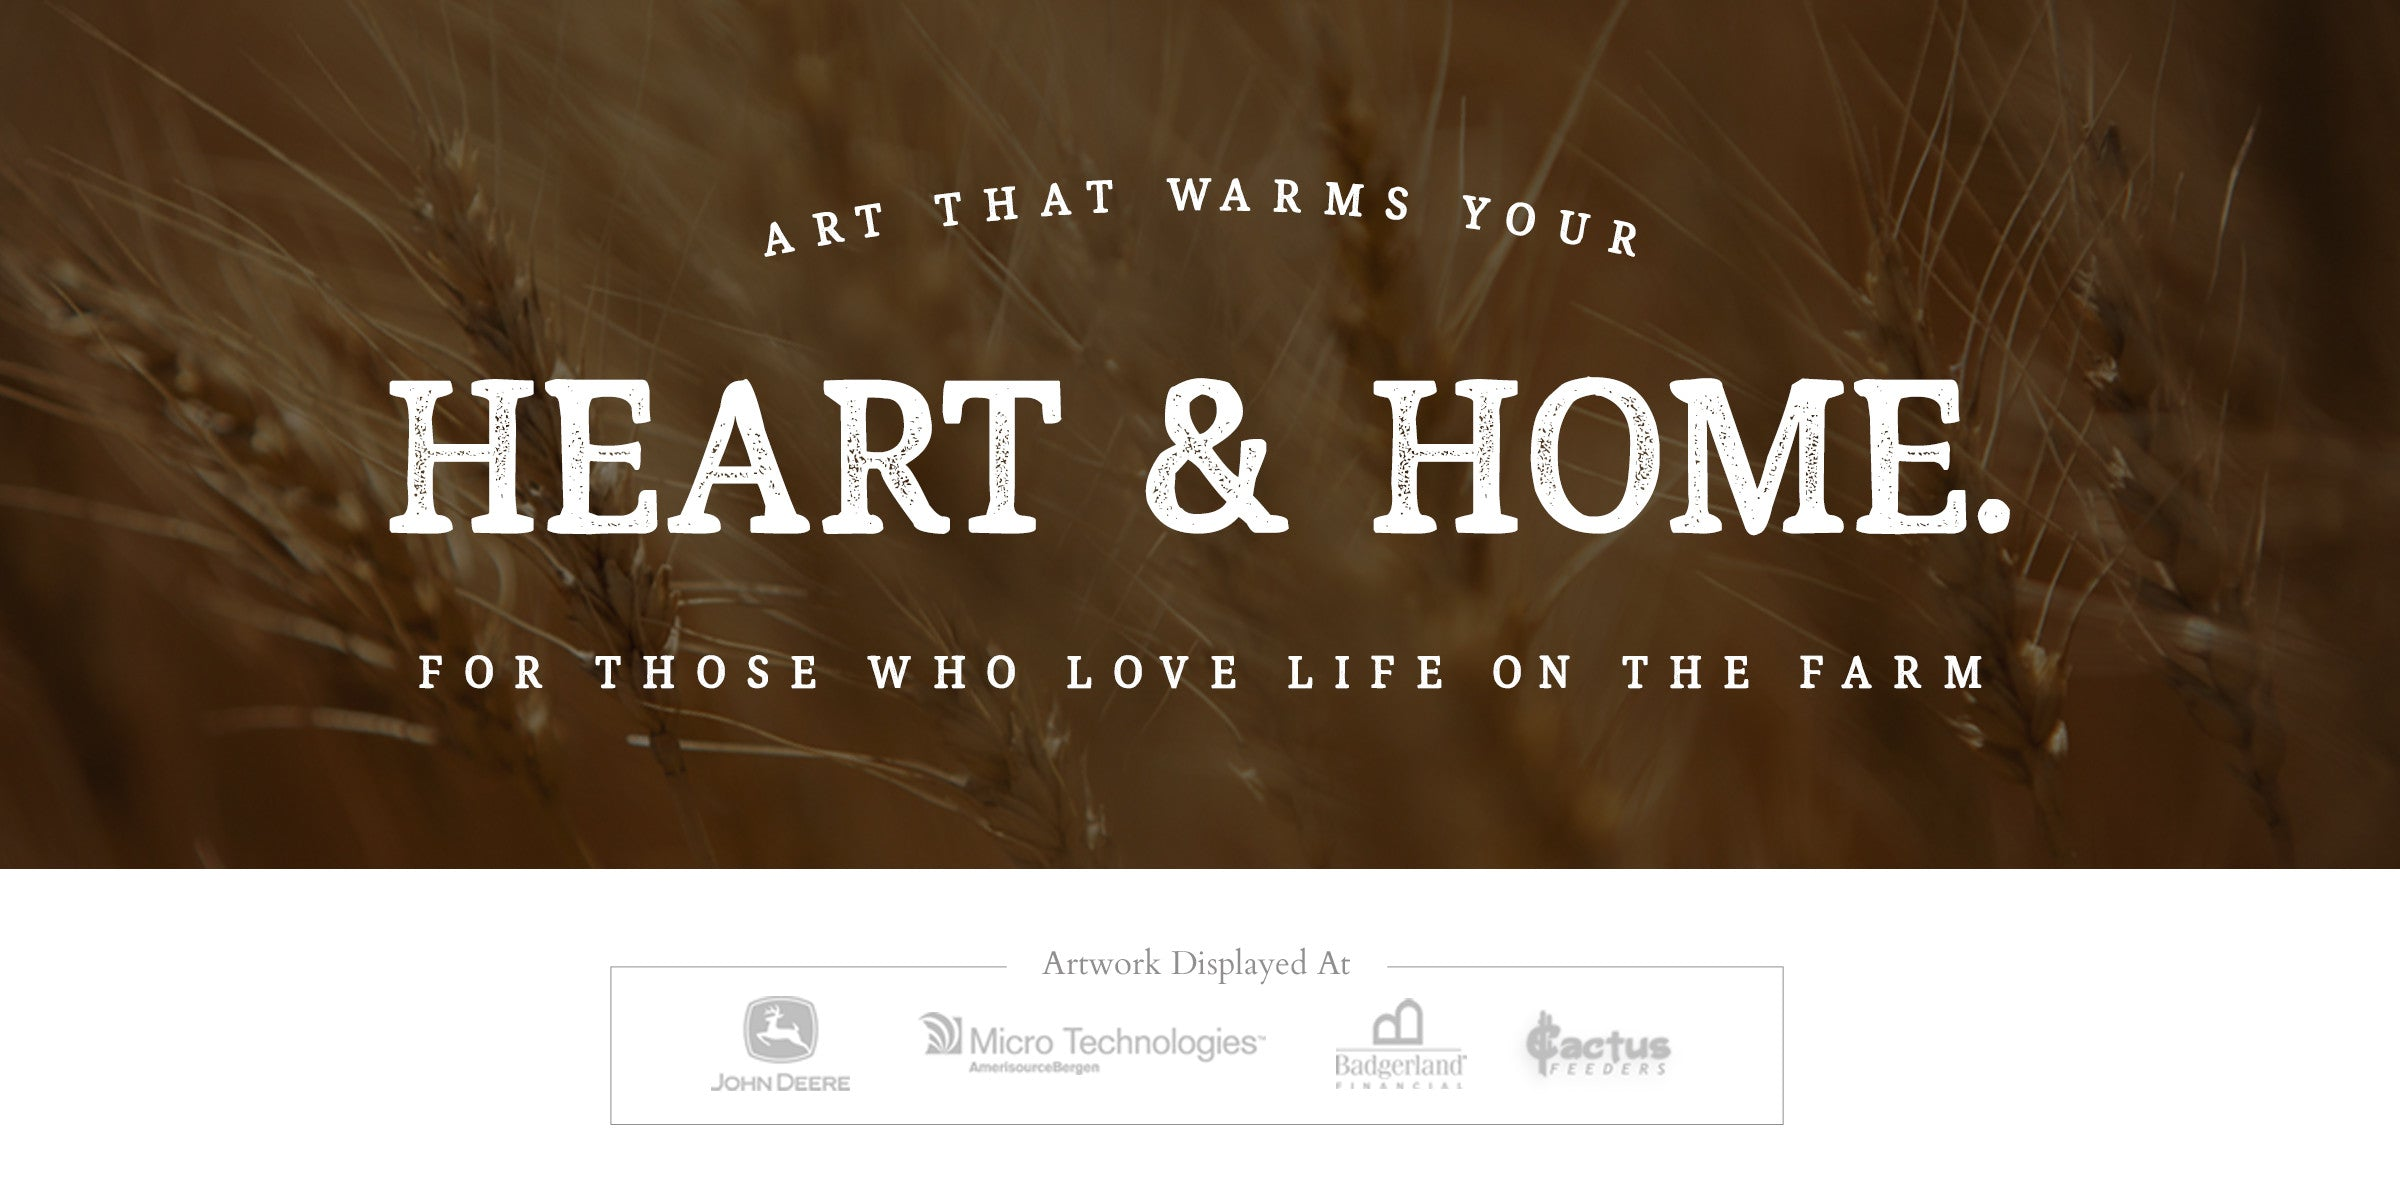 Art that Warms Your Heart & Home